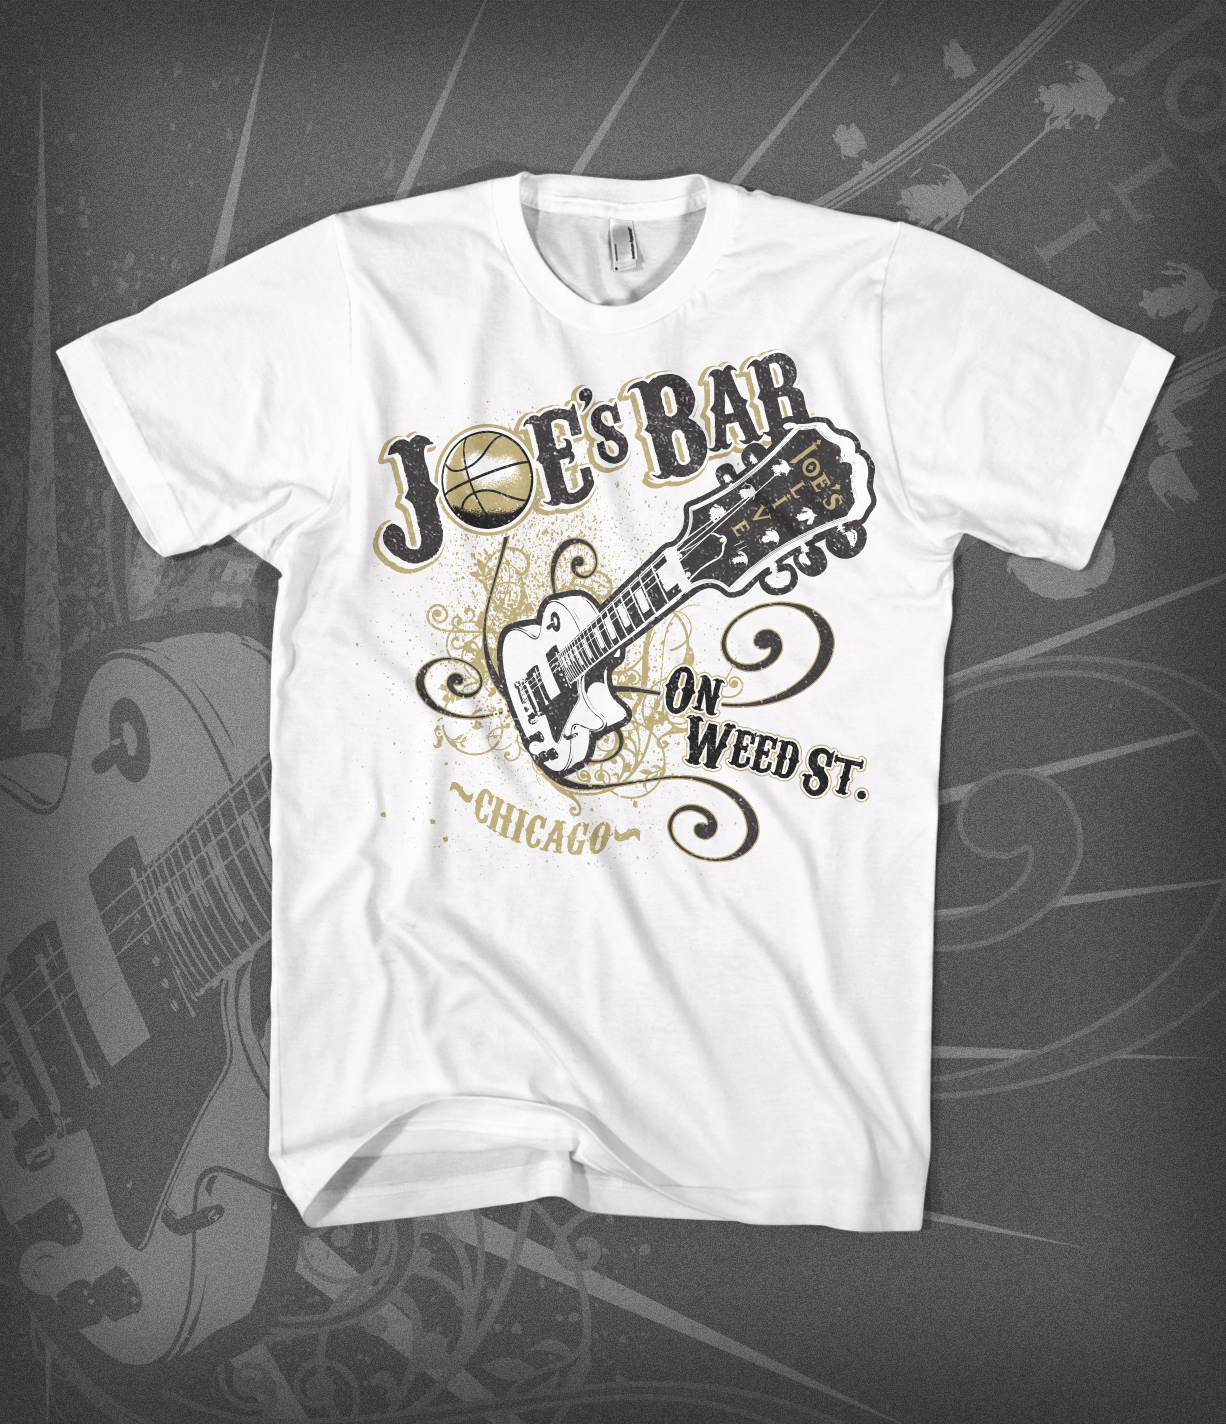 Joe's Bar - Tee design - white